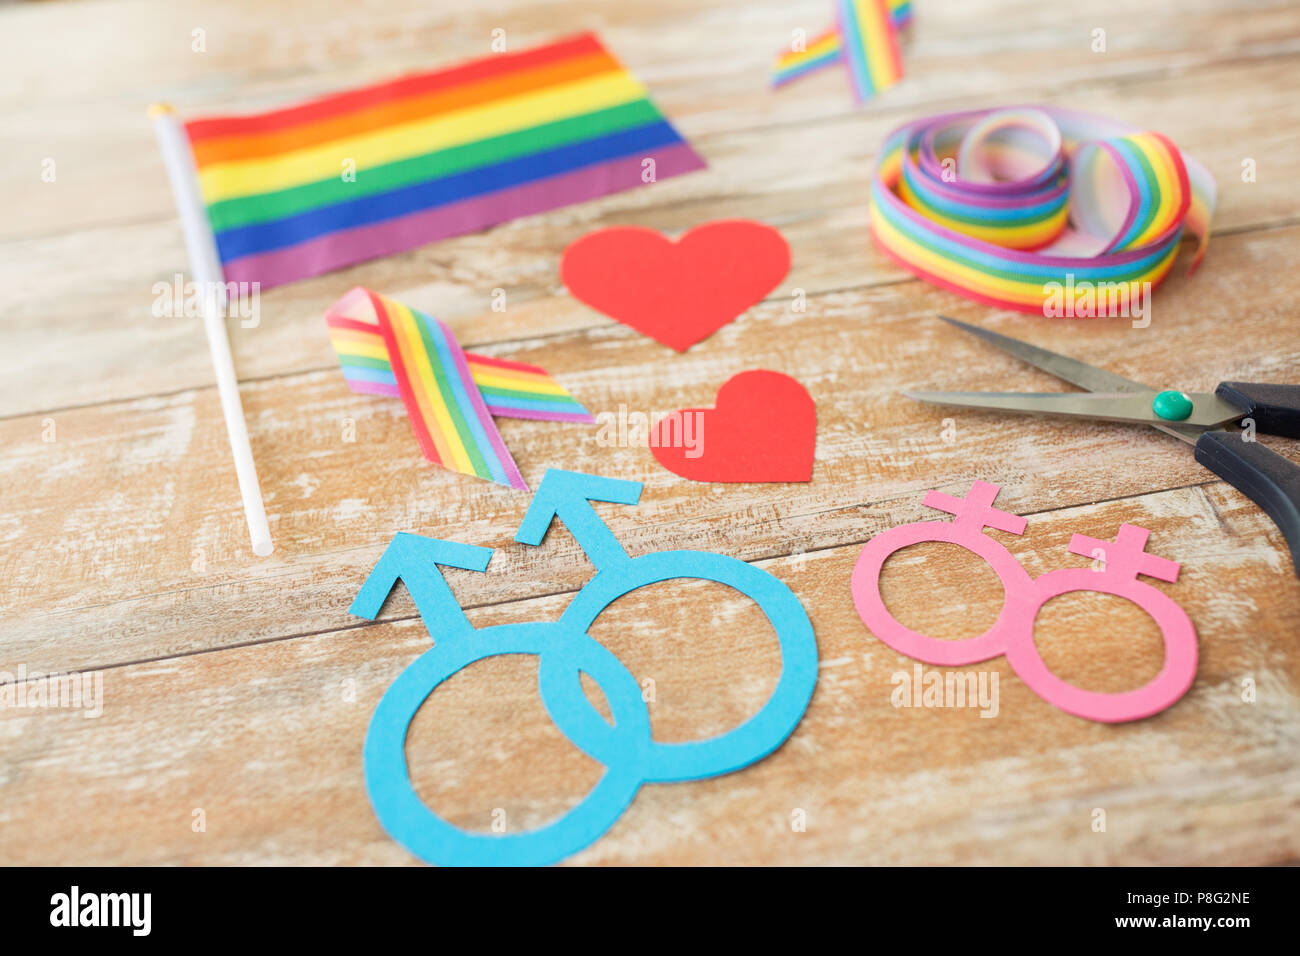 scissors and gay party props on wooden boards - Stock Image